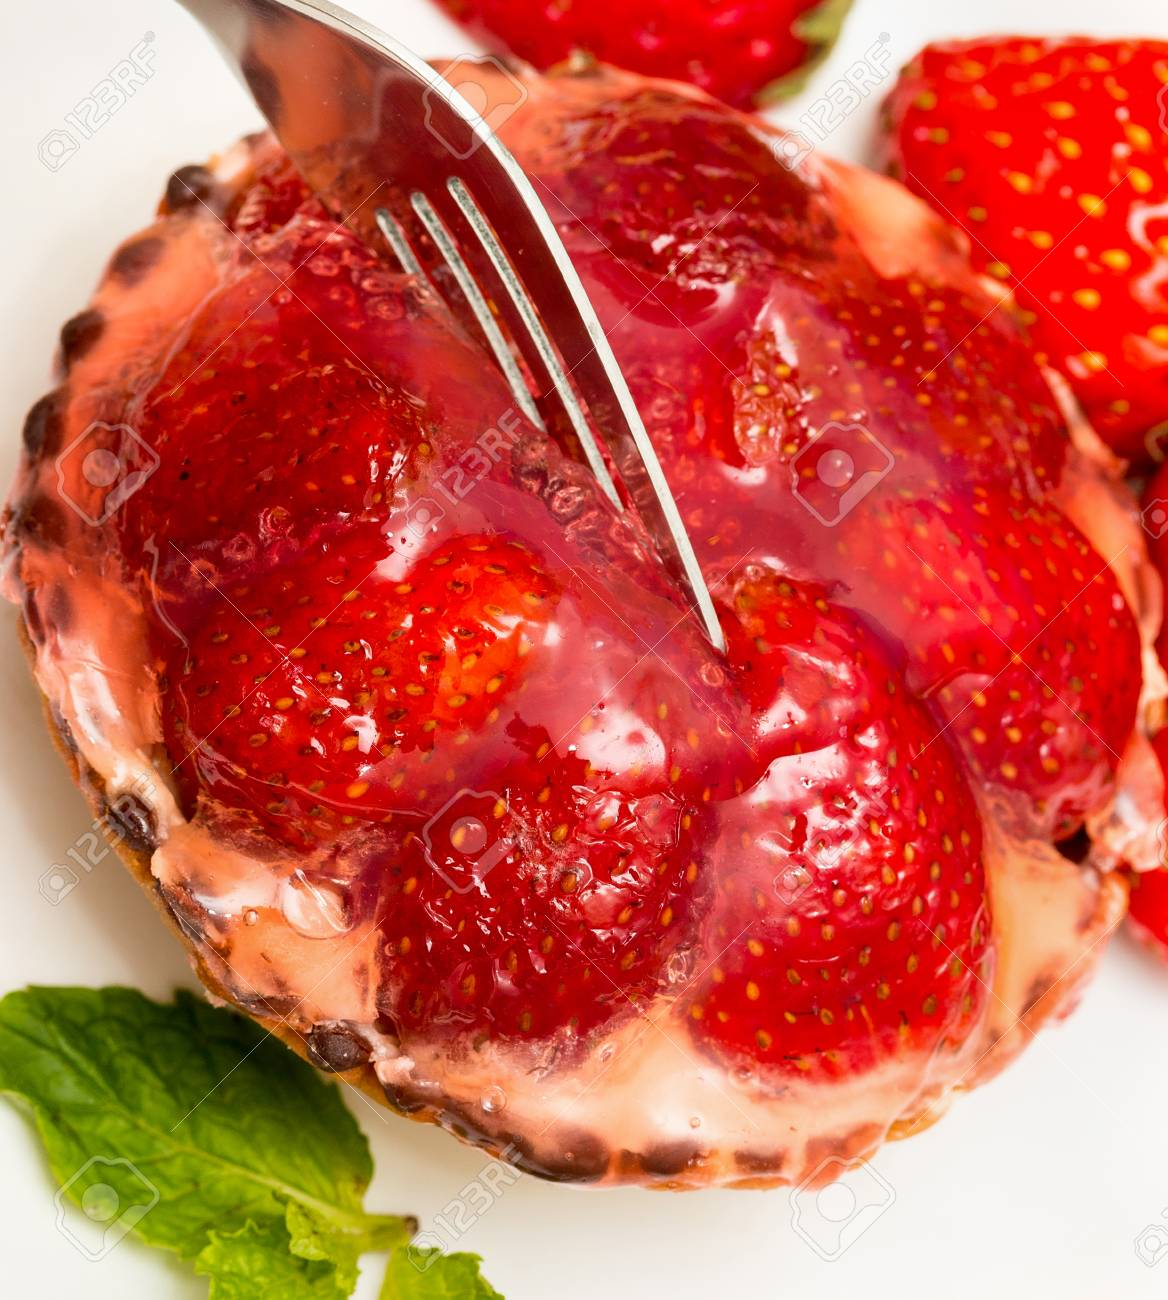 Strawberry Tart Meaning Fruit Pie And Baking